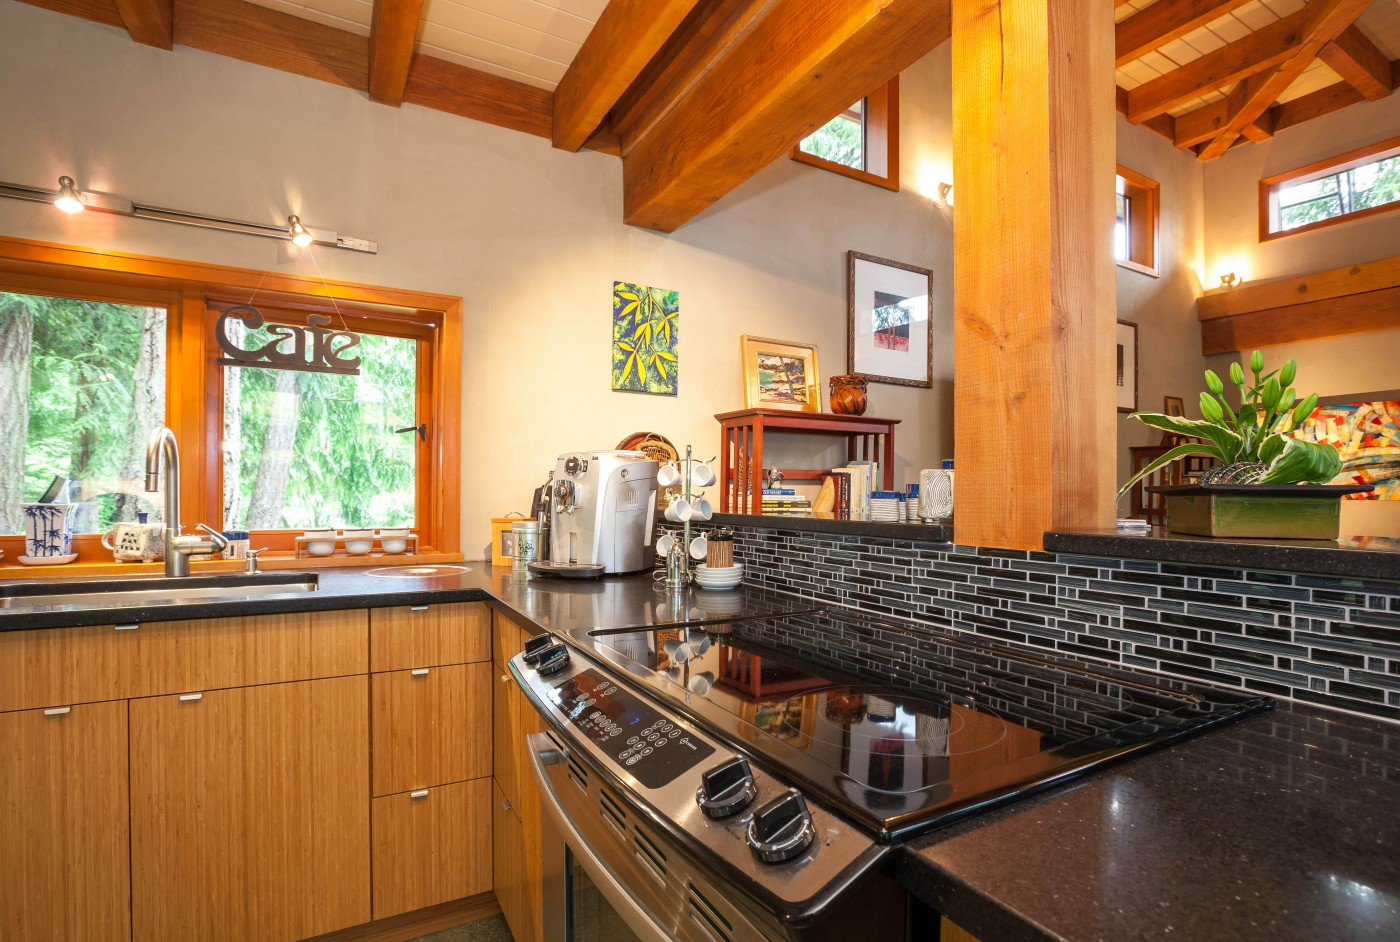 david coulson design and build kitchen